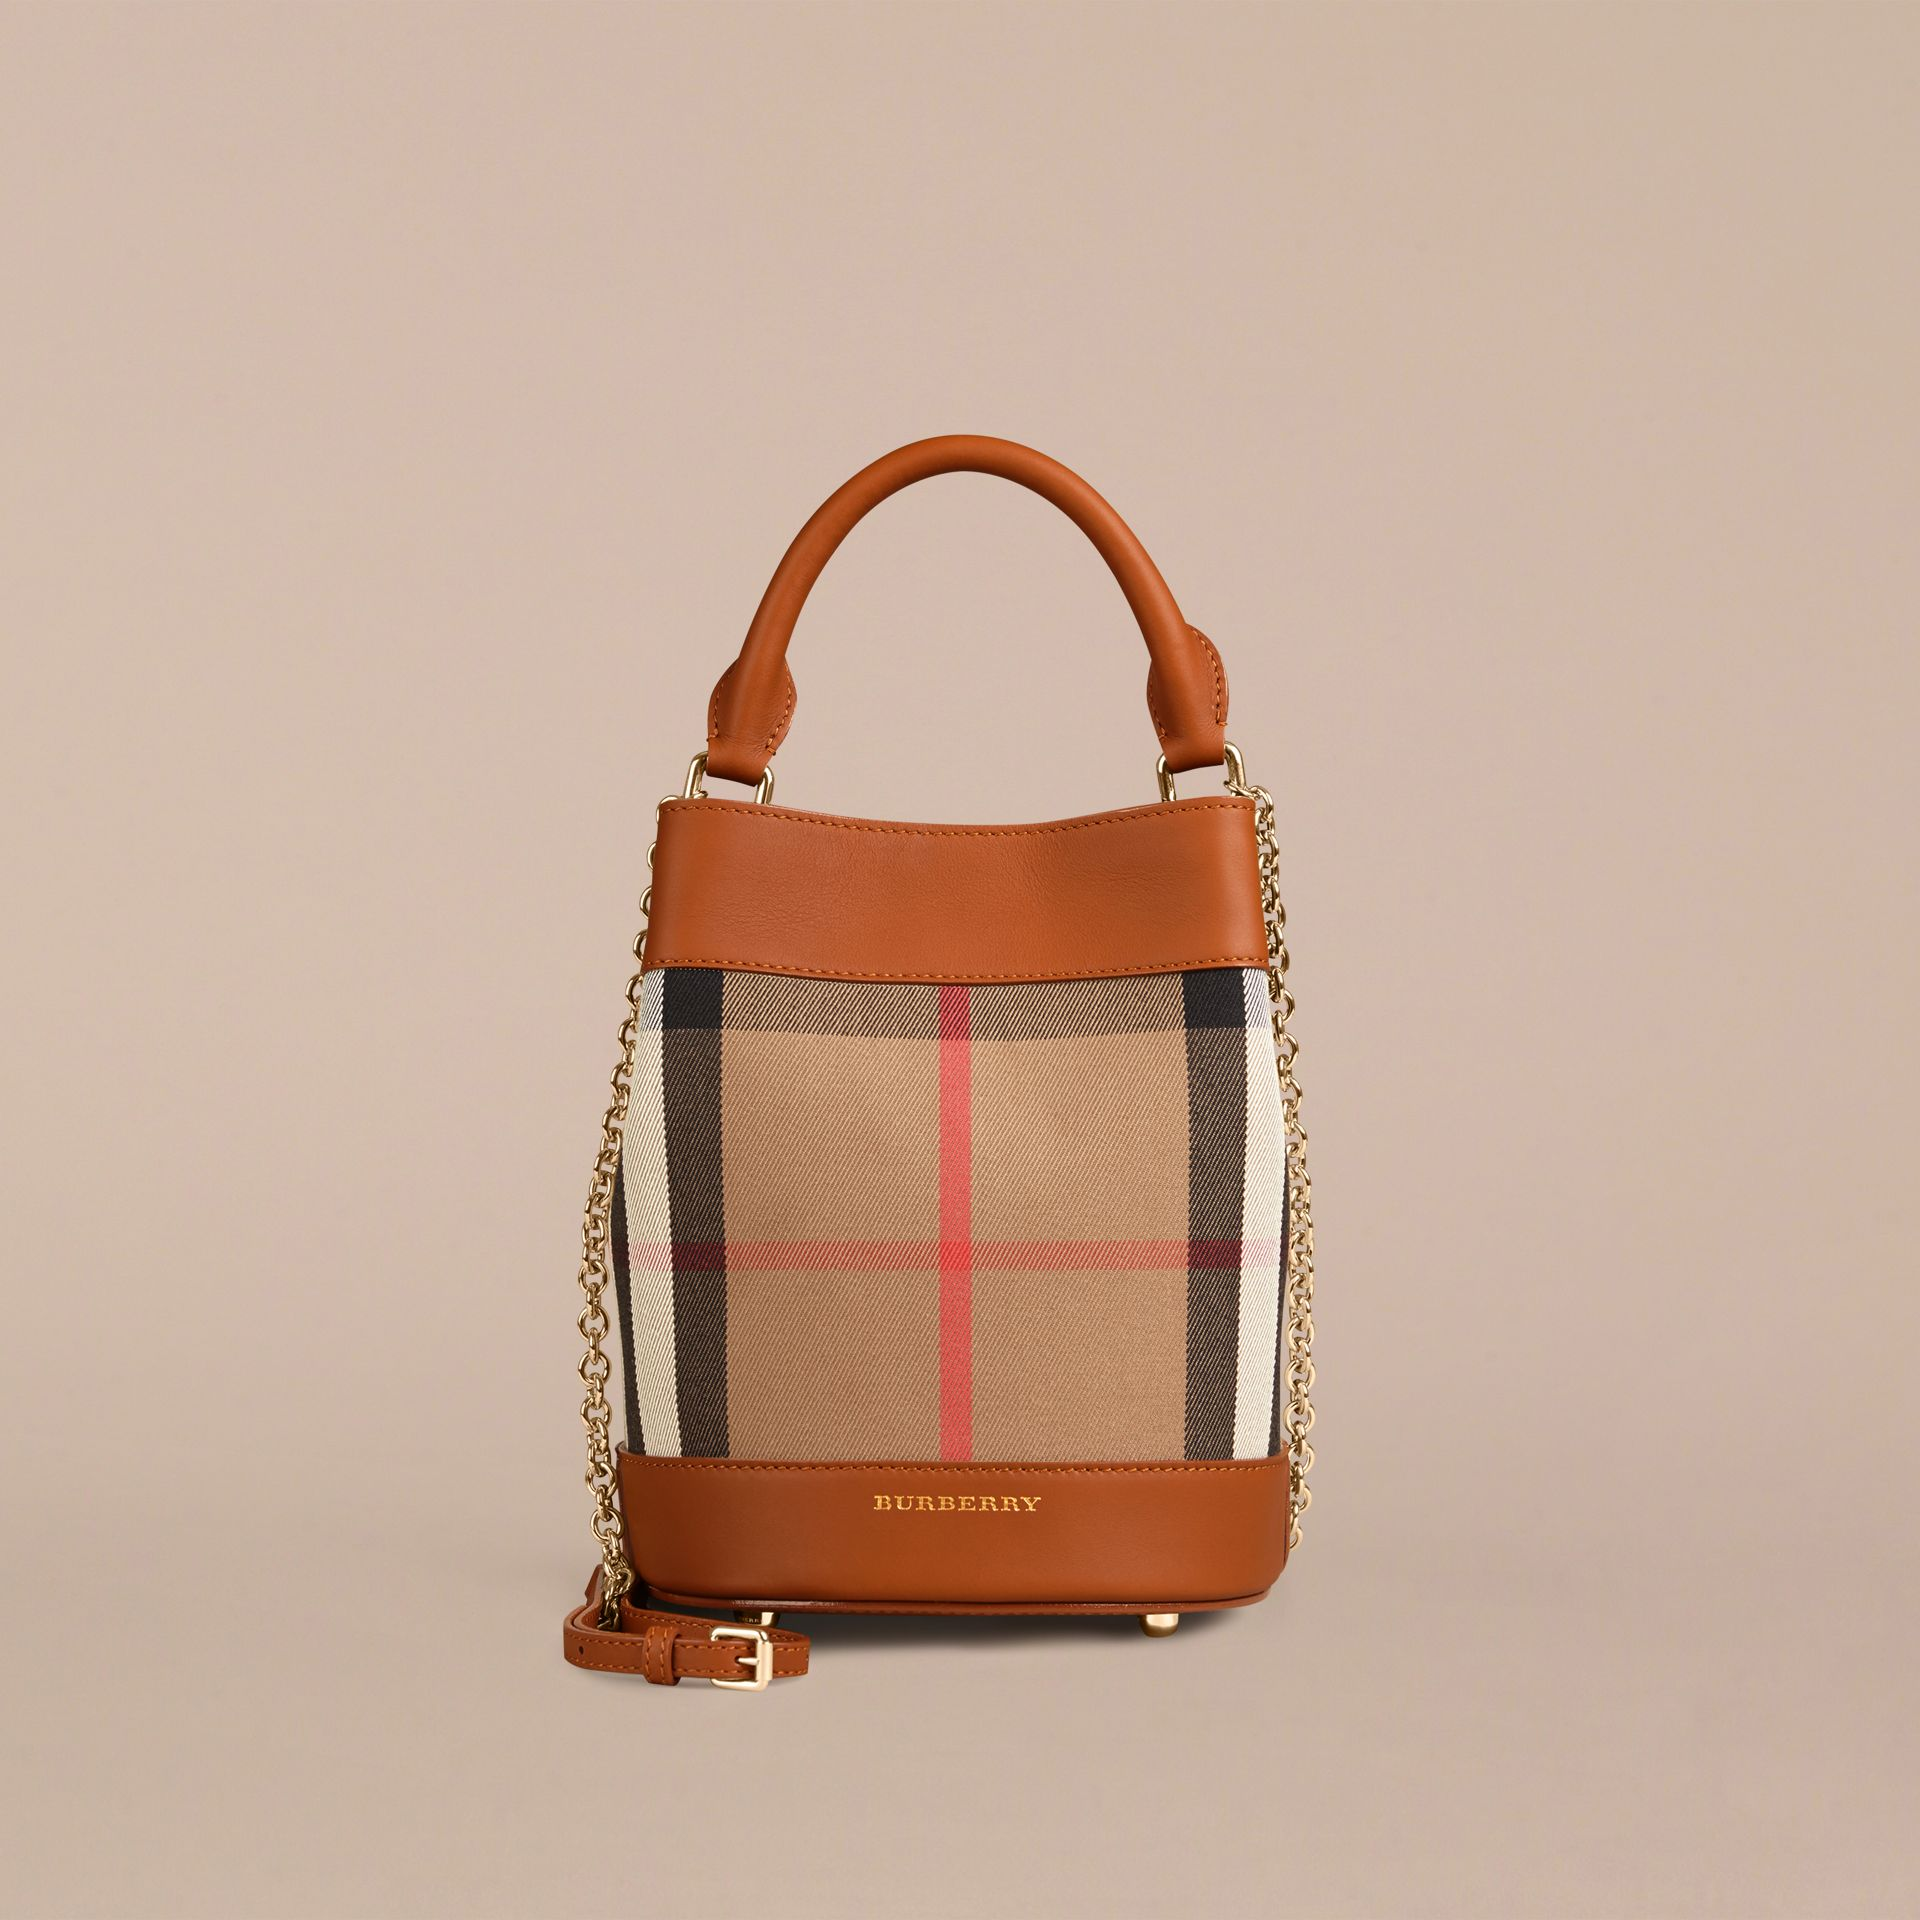 Light toffee The Small Bucket Bag in House Check and Leather Light Toffee - gallery image 4